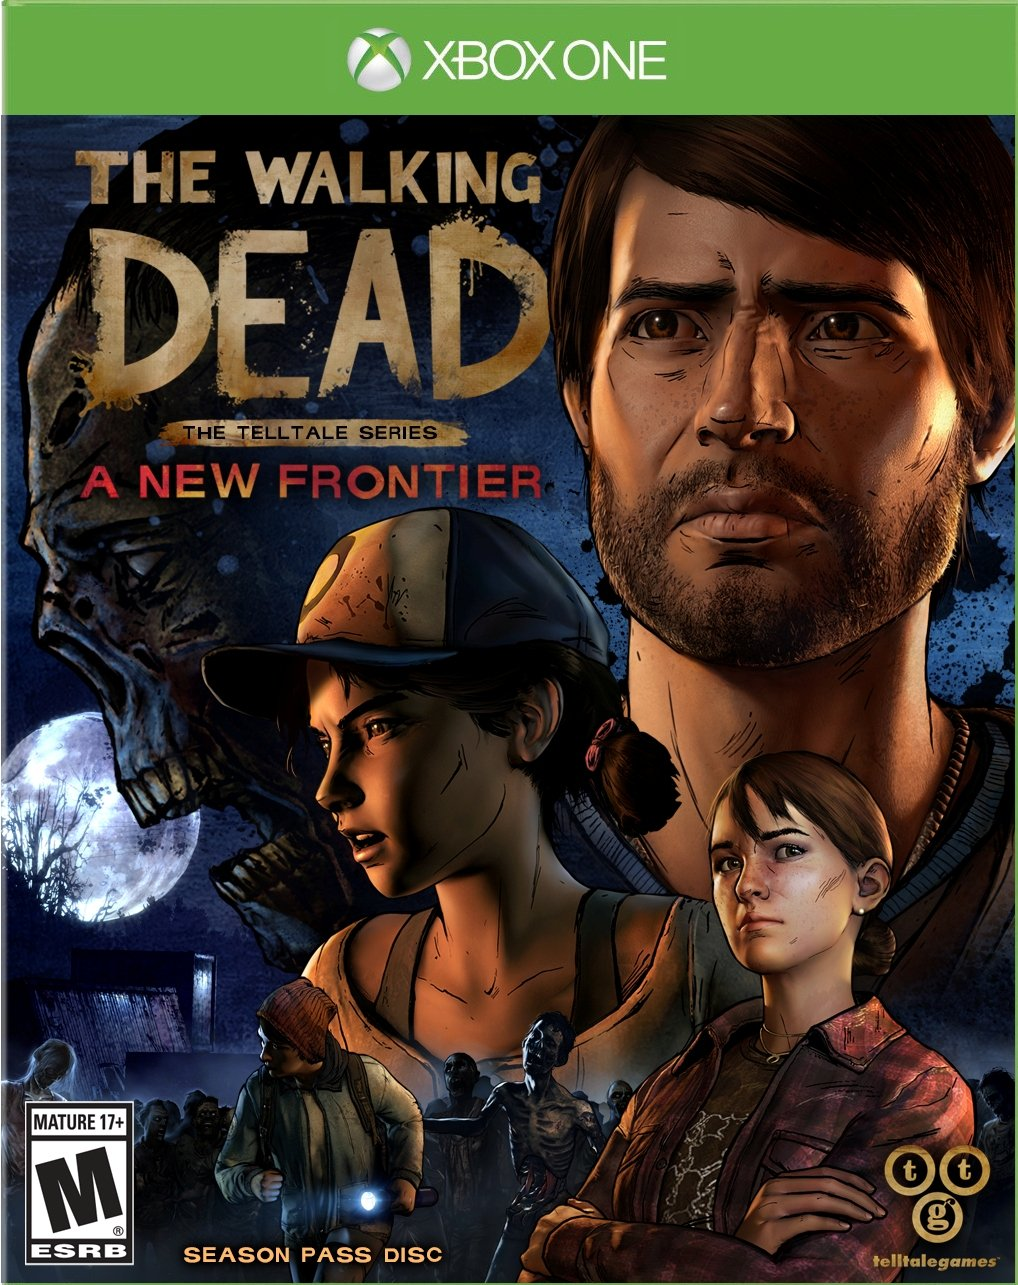 The Walking Dead: The Telltale Series A New Frontier ...